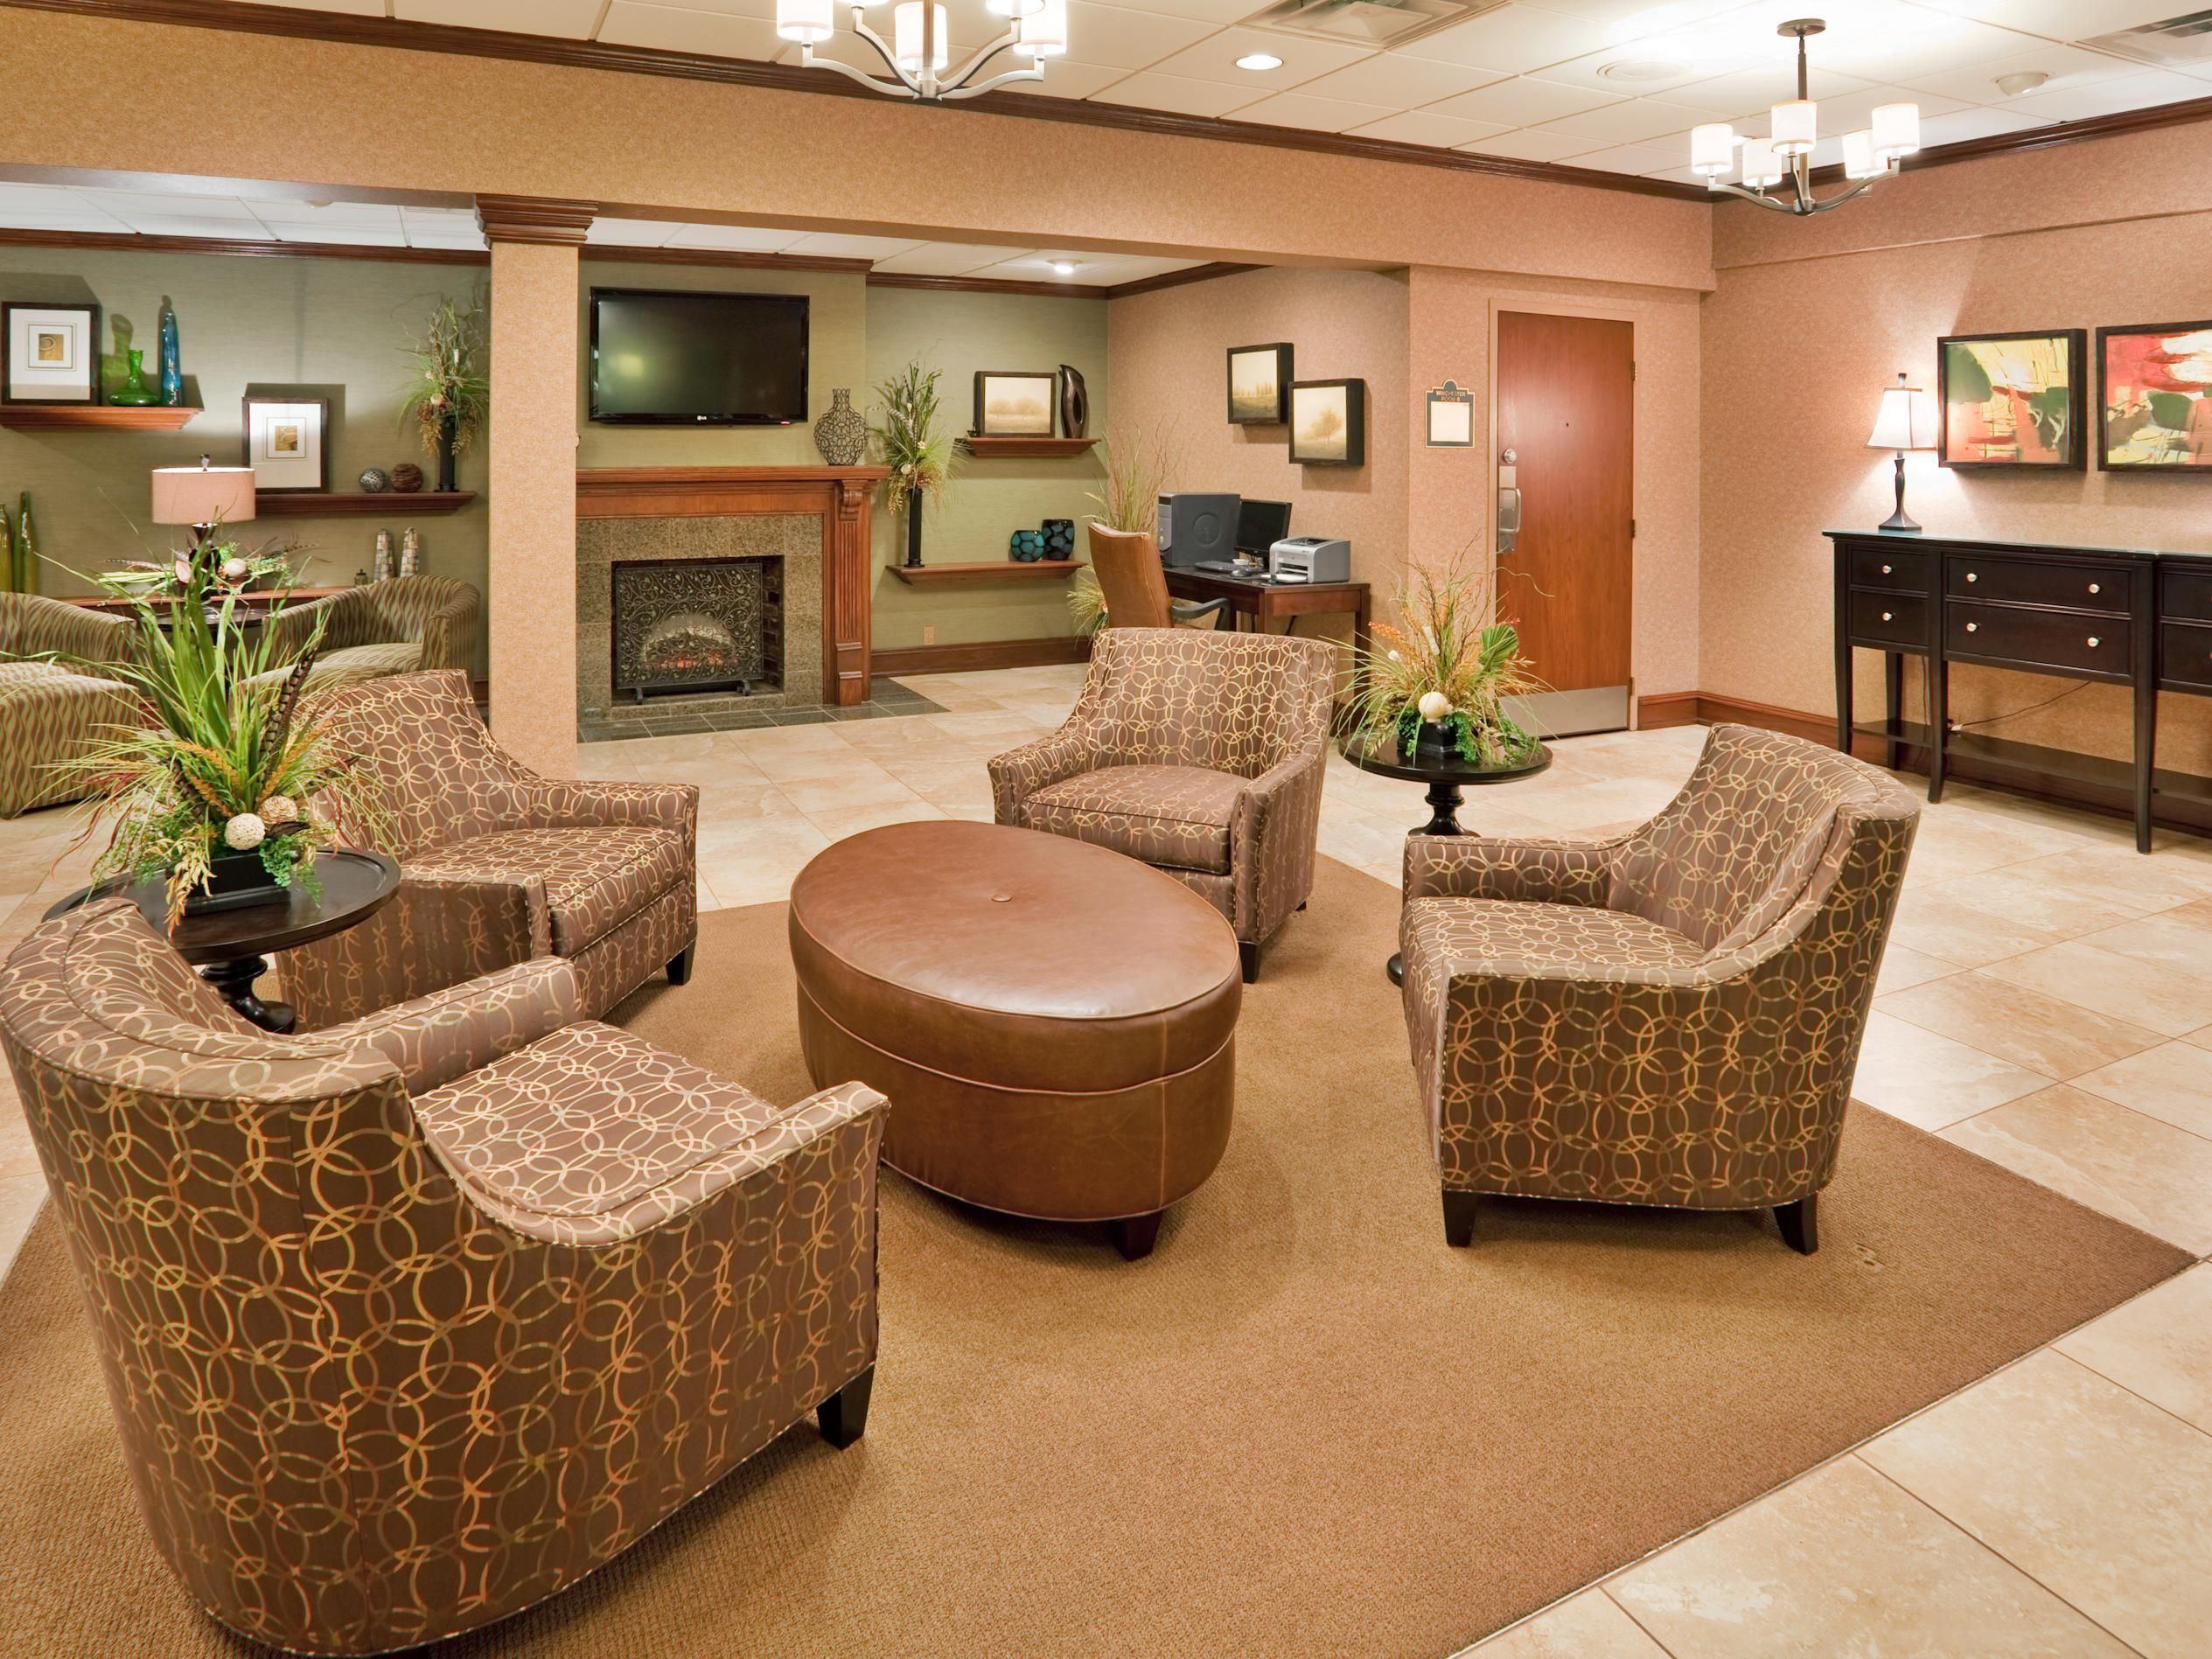 Meet your group in the lobby of the Holiday Inn South!